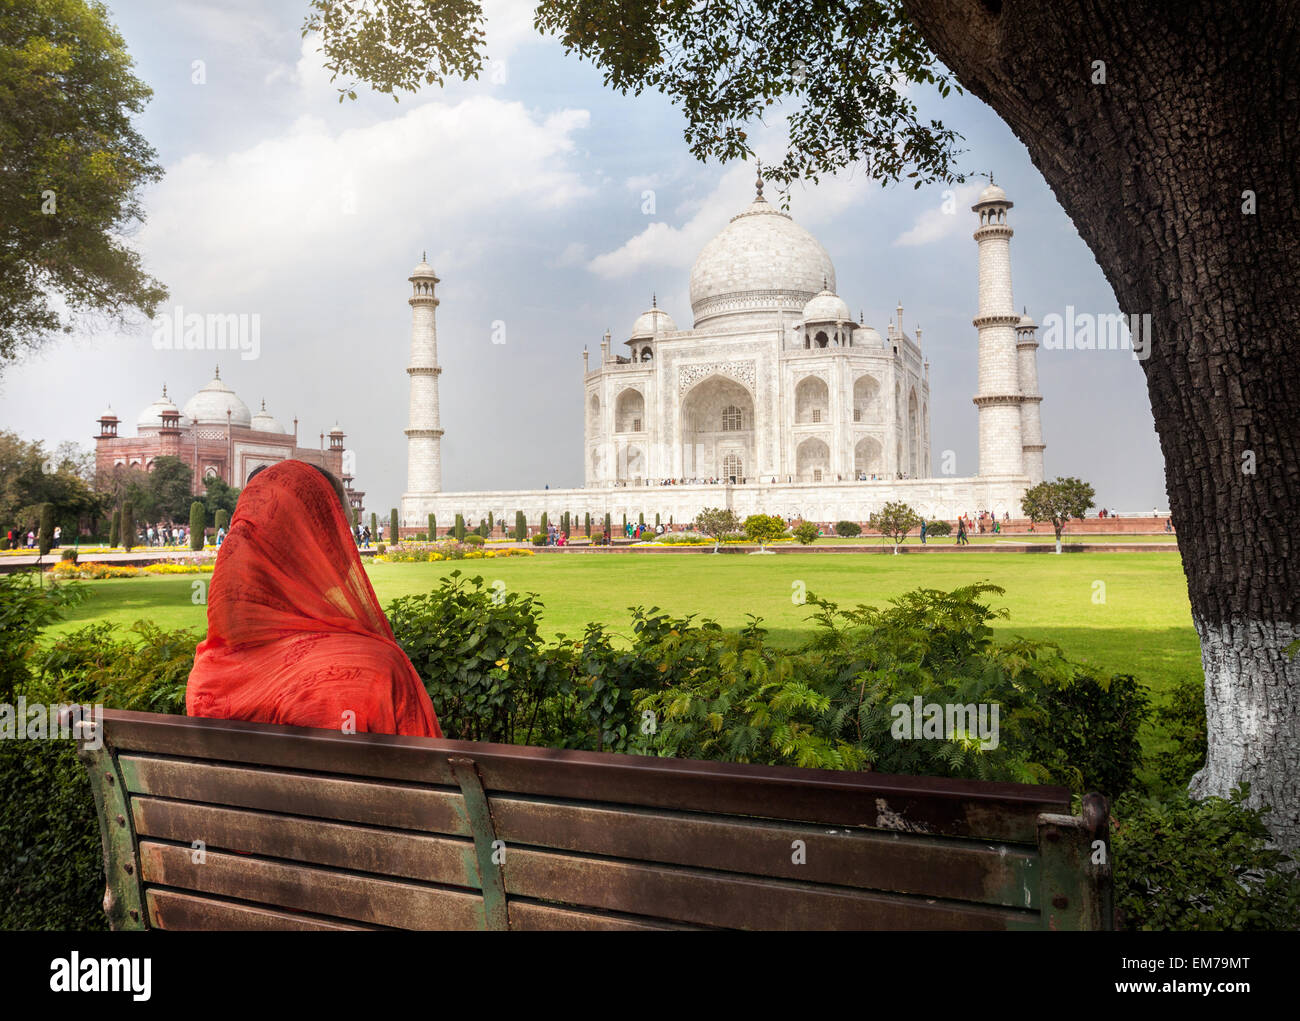 Woman in red scarf sitting on the bench in the shadow and looking at Taj Mahal in Agra, Uttar Pradesh, India - Stock Image